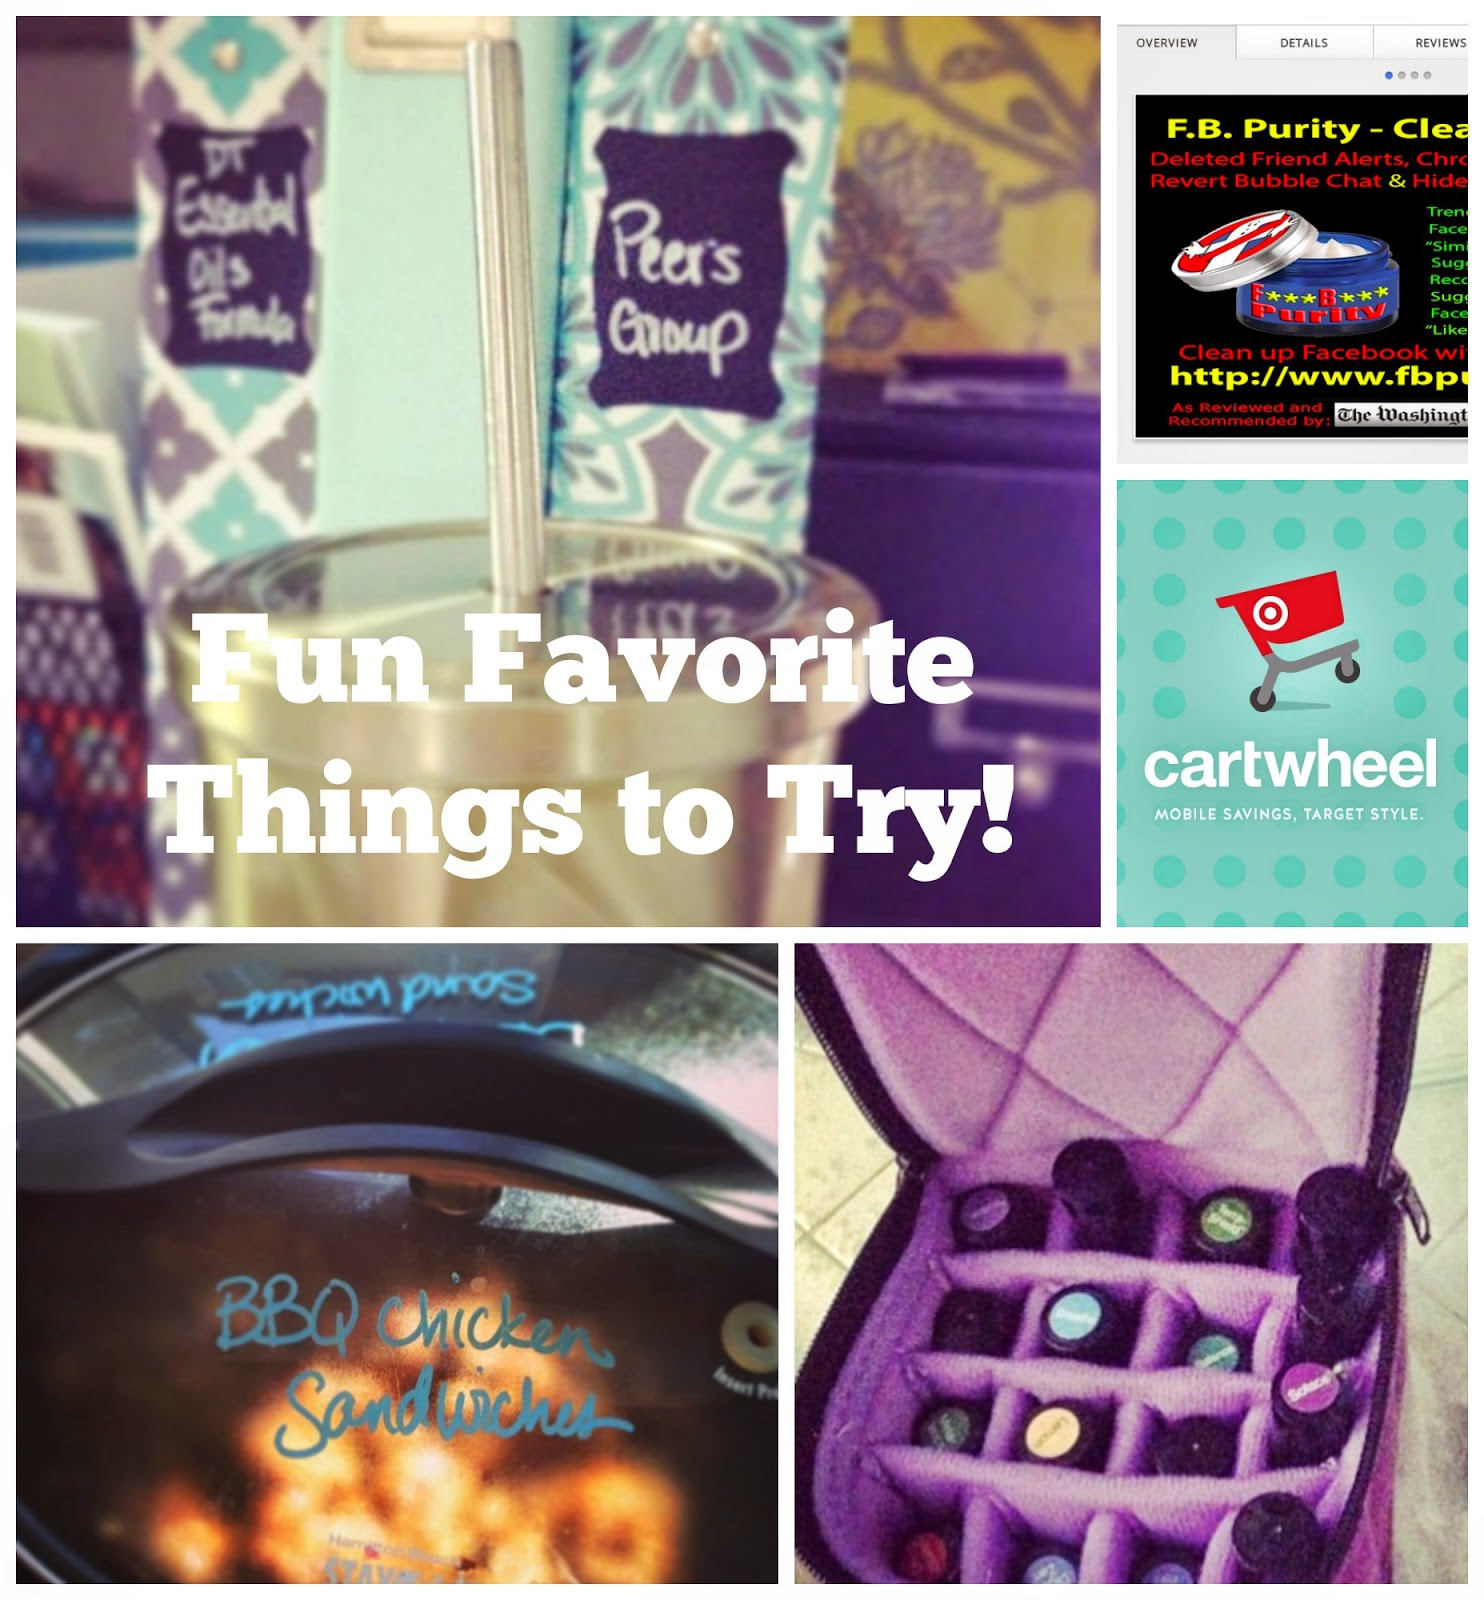 Fun Favorite Things to Try -- stainless steel straws, crockpot, cartwheel app, essential oil travel case, and FB purity :: OrganizingMadeFun.com